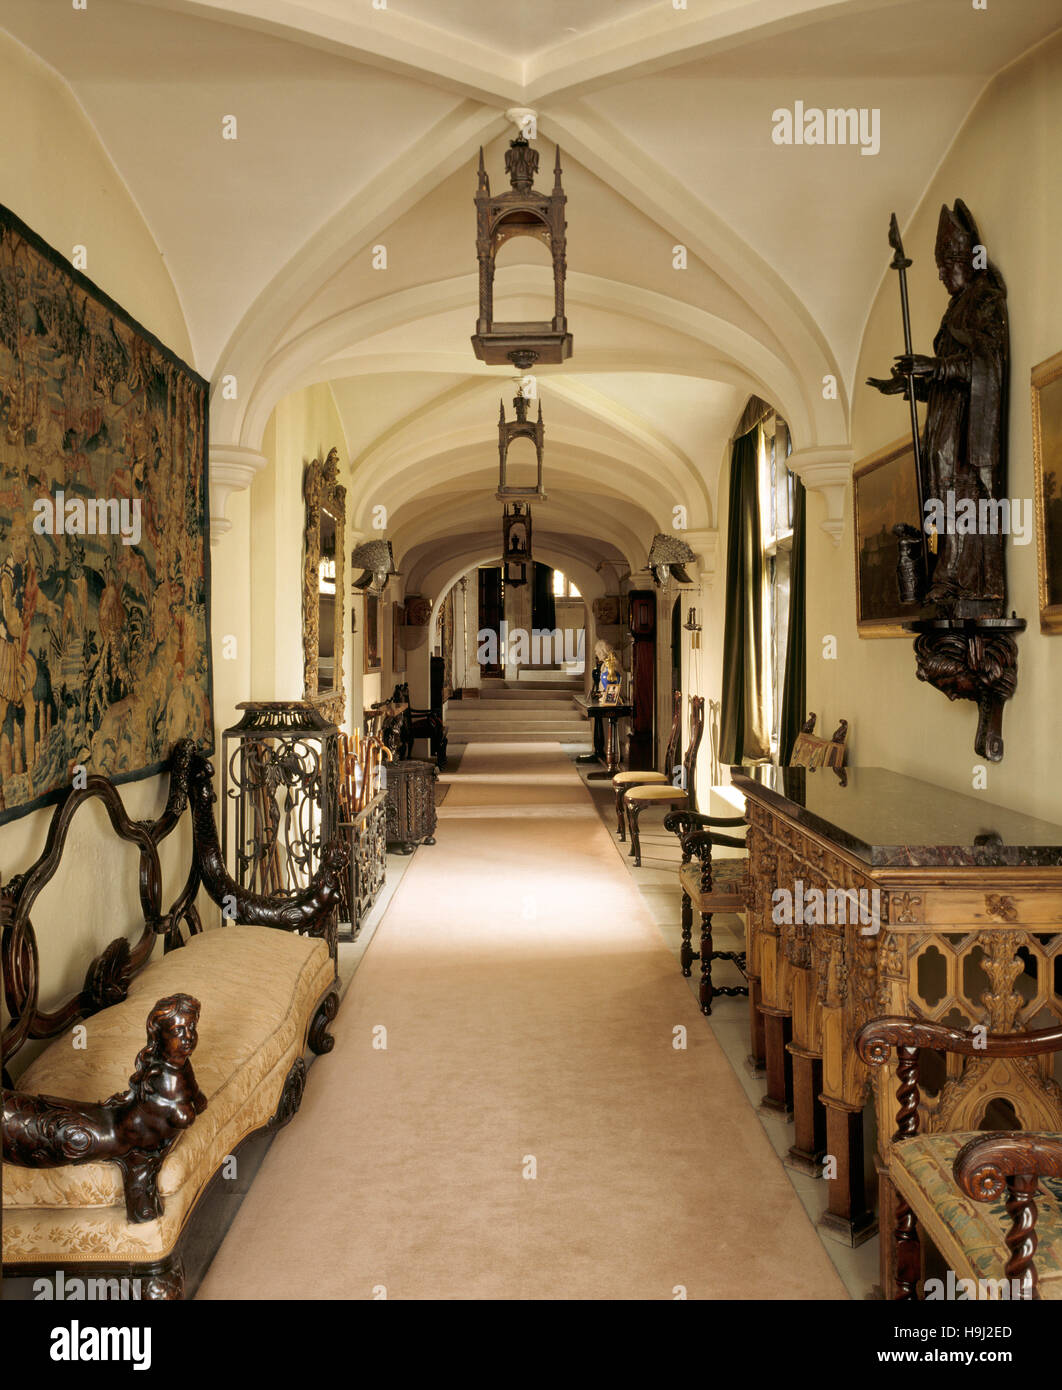 The Long Gallery at Anglesey Abbey - view from the Porch end towards the staircase including the Portuguese hall - Stock Image